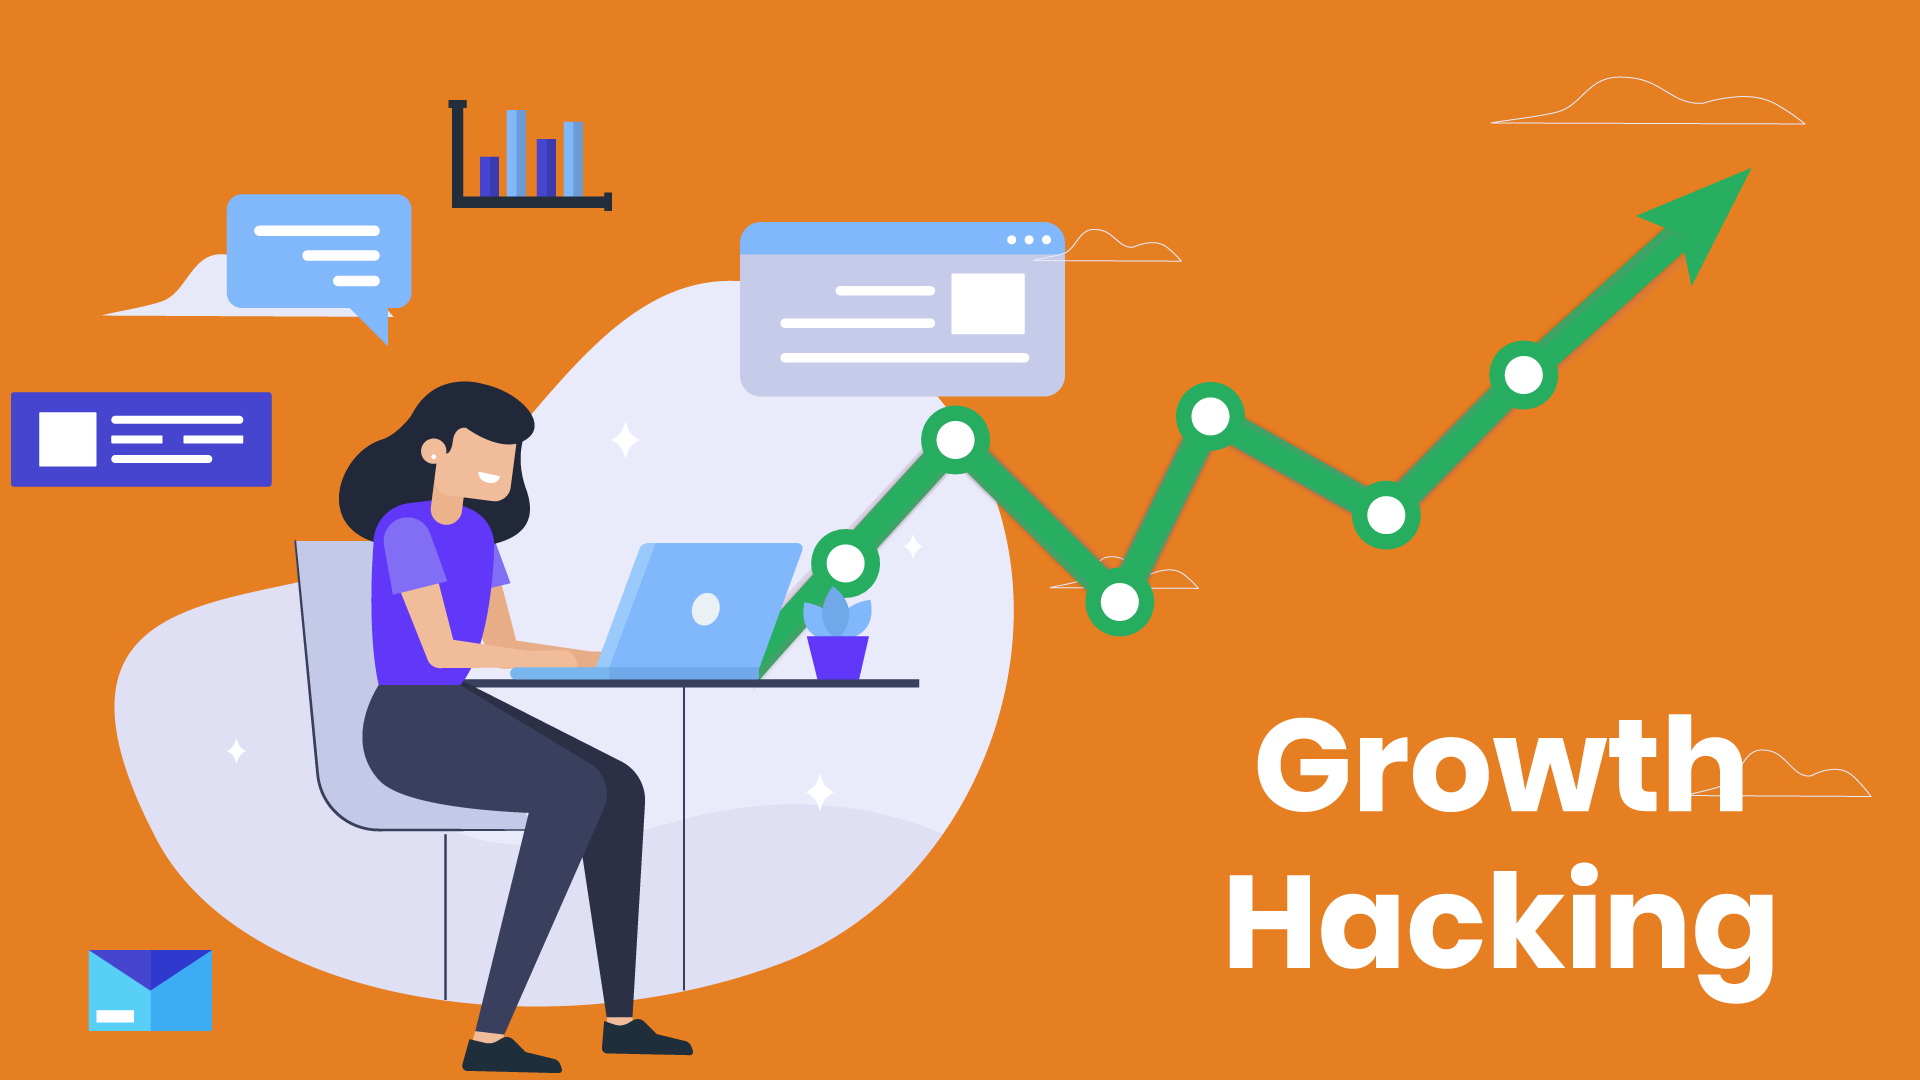 Fast intro into Growth hacking - abac